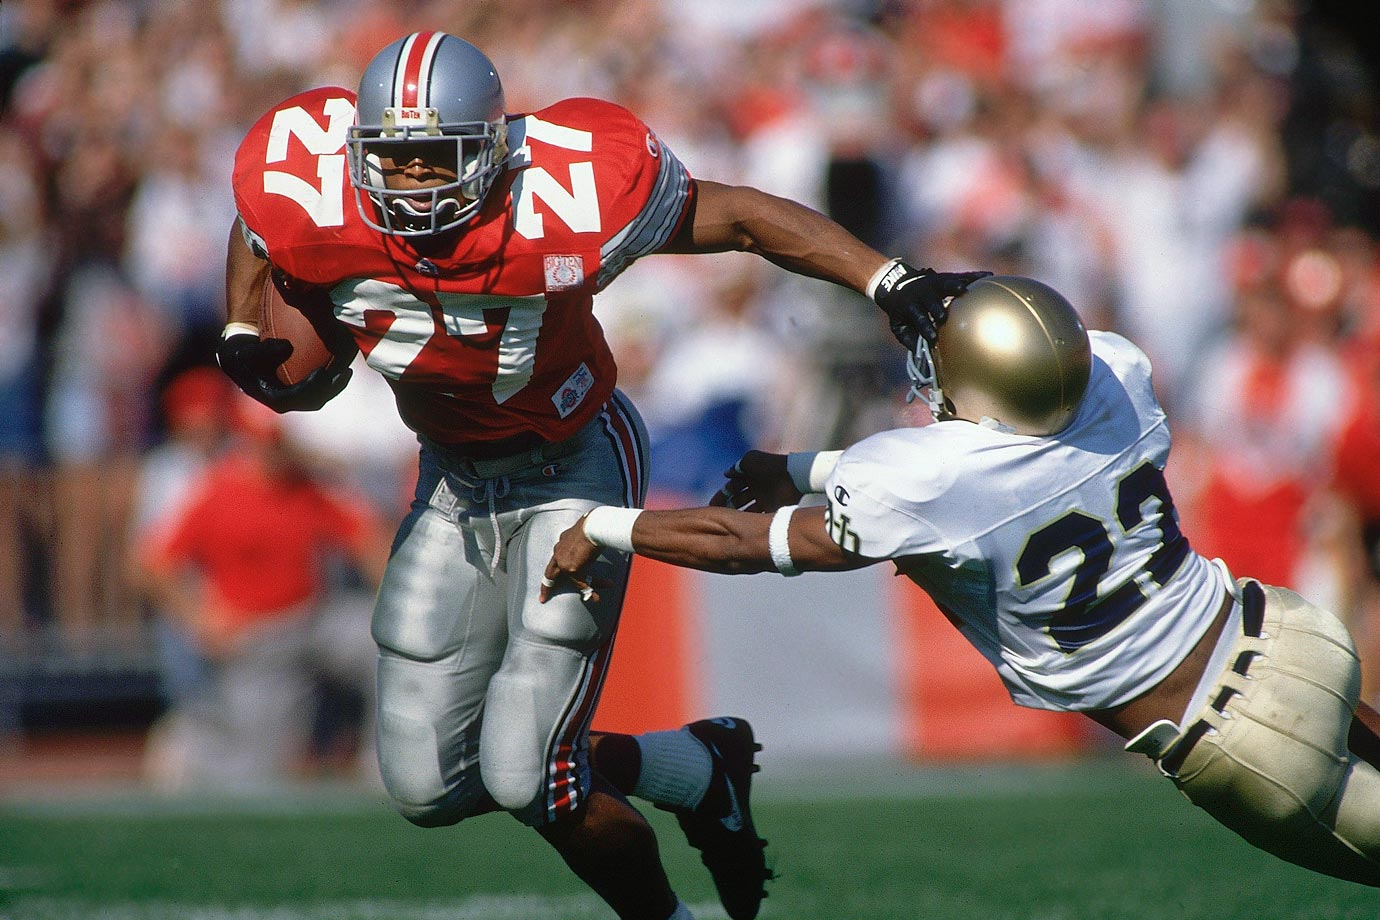 As a senior George rushed for a school-record 1,927 yards and 24 touchdowns, including 314 yards and three touchdowns against Illinois. He won the Heisman Trophy and Maxwell Award in 1995. — Runner-up: Joe Belino, HB, Navy (1958-60)